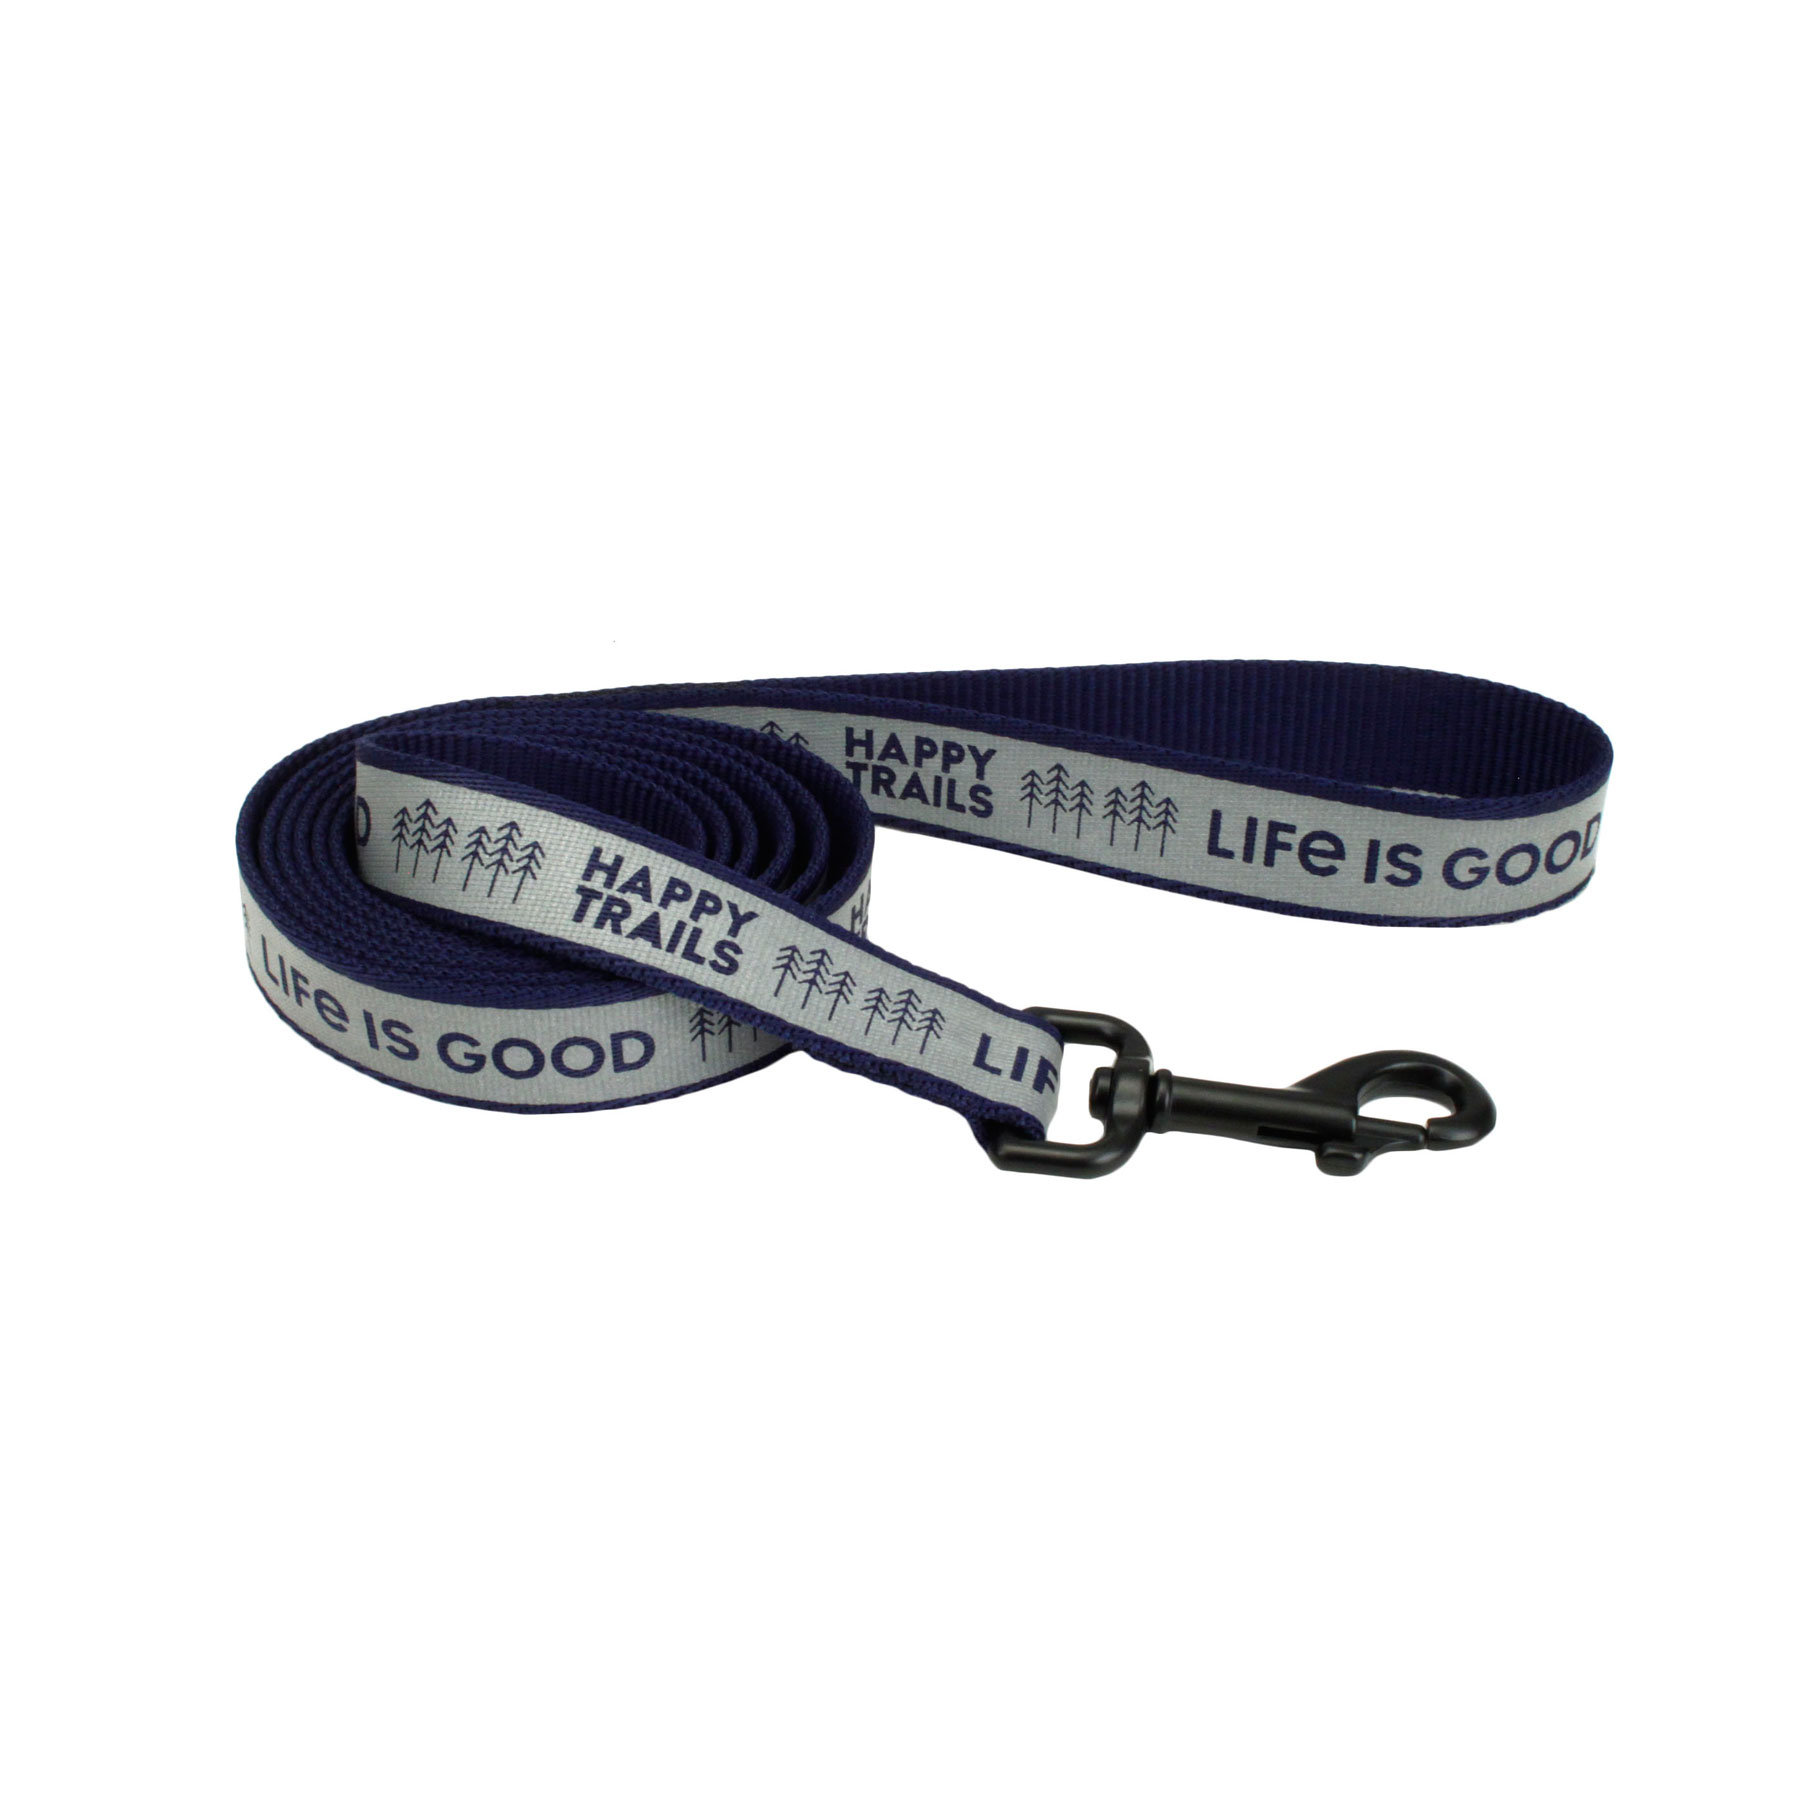 Life is Good® Reflective Dog Leash